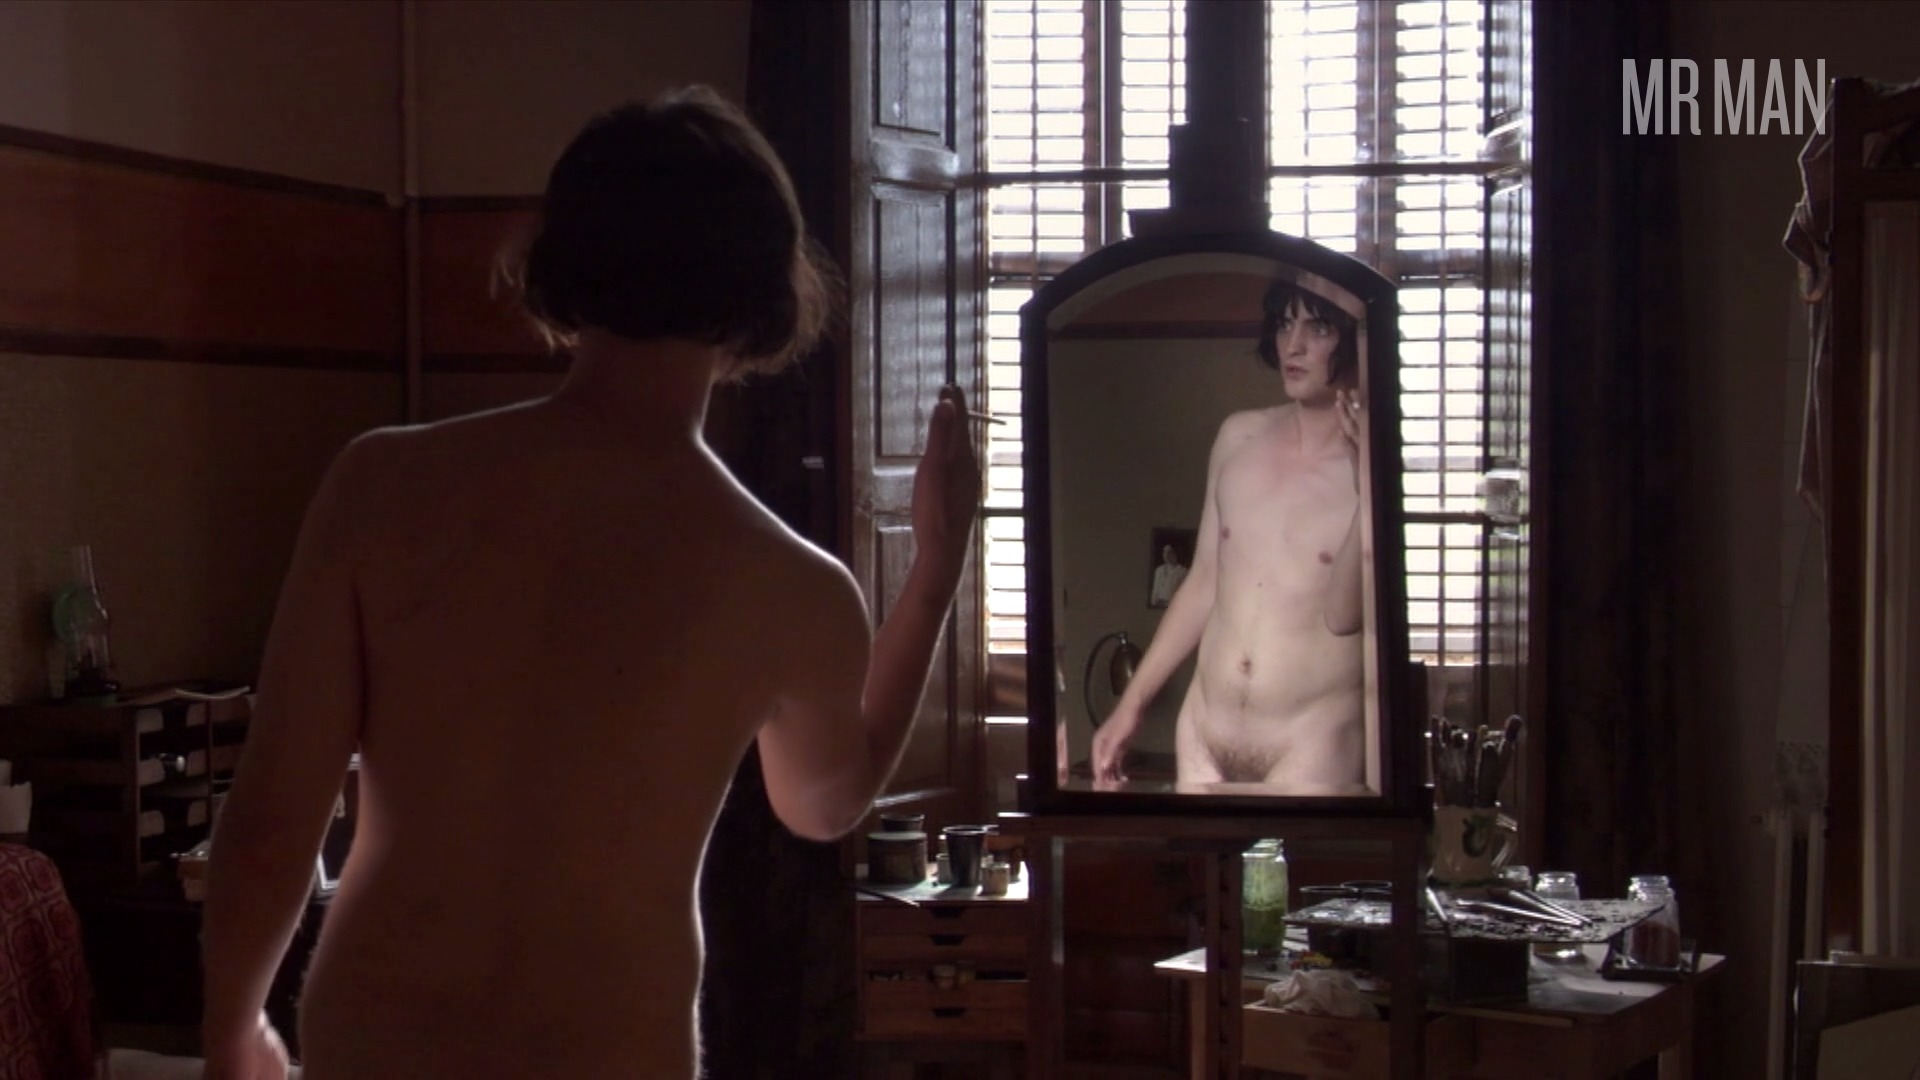 Robert pattinson hot sexy naked pictures